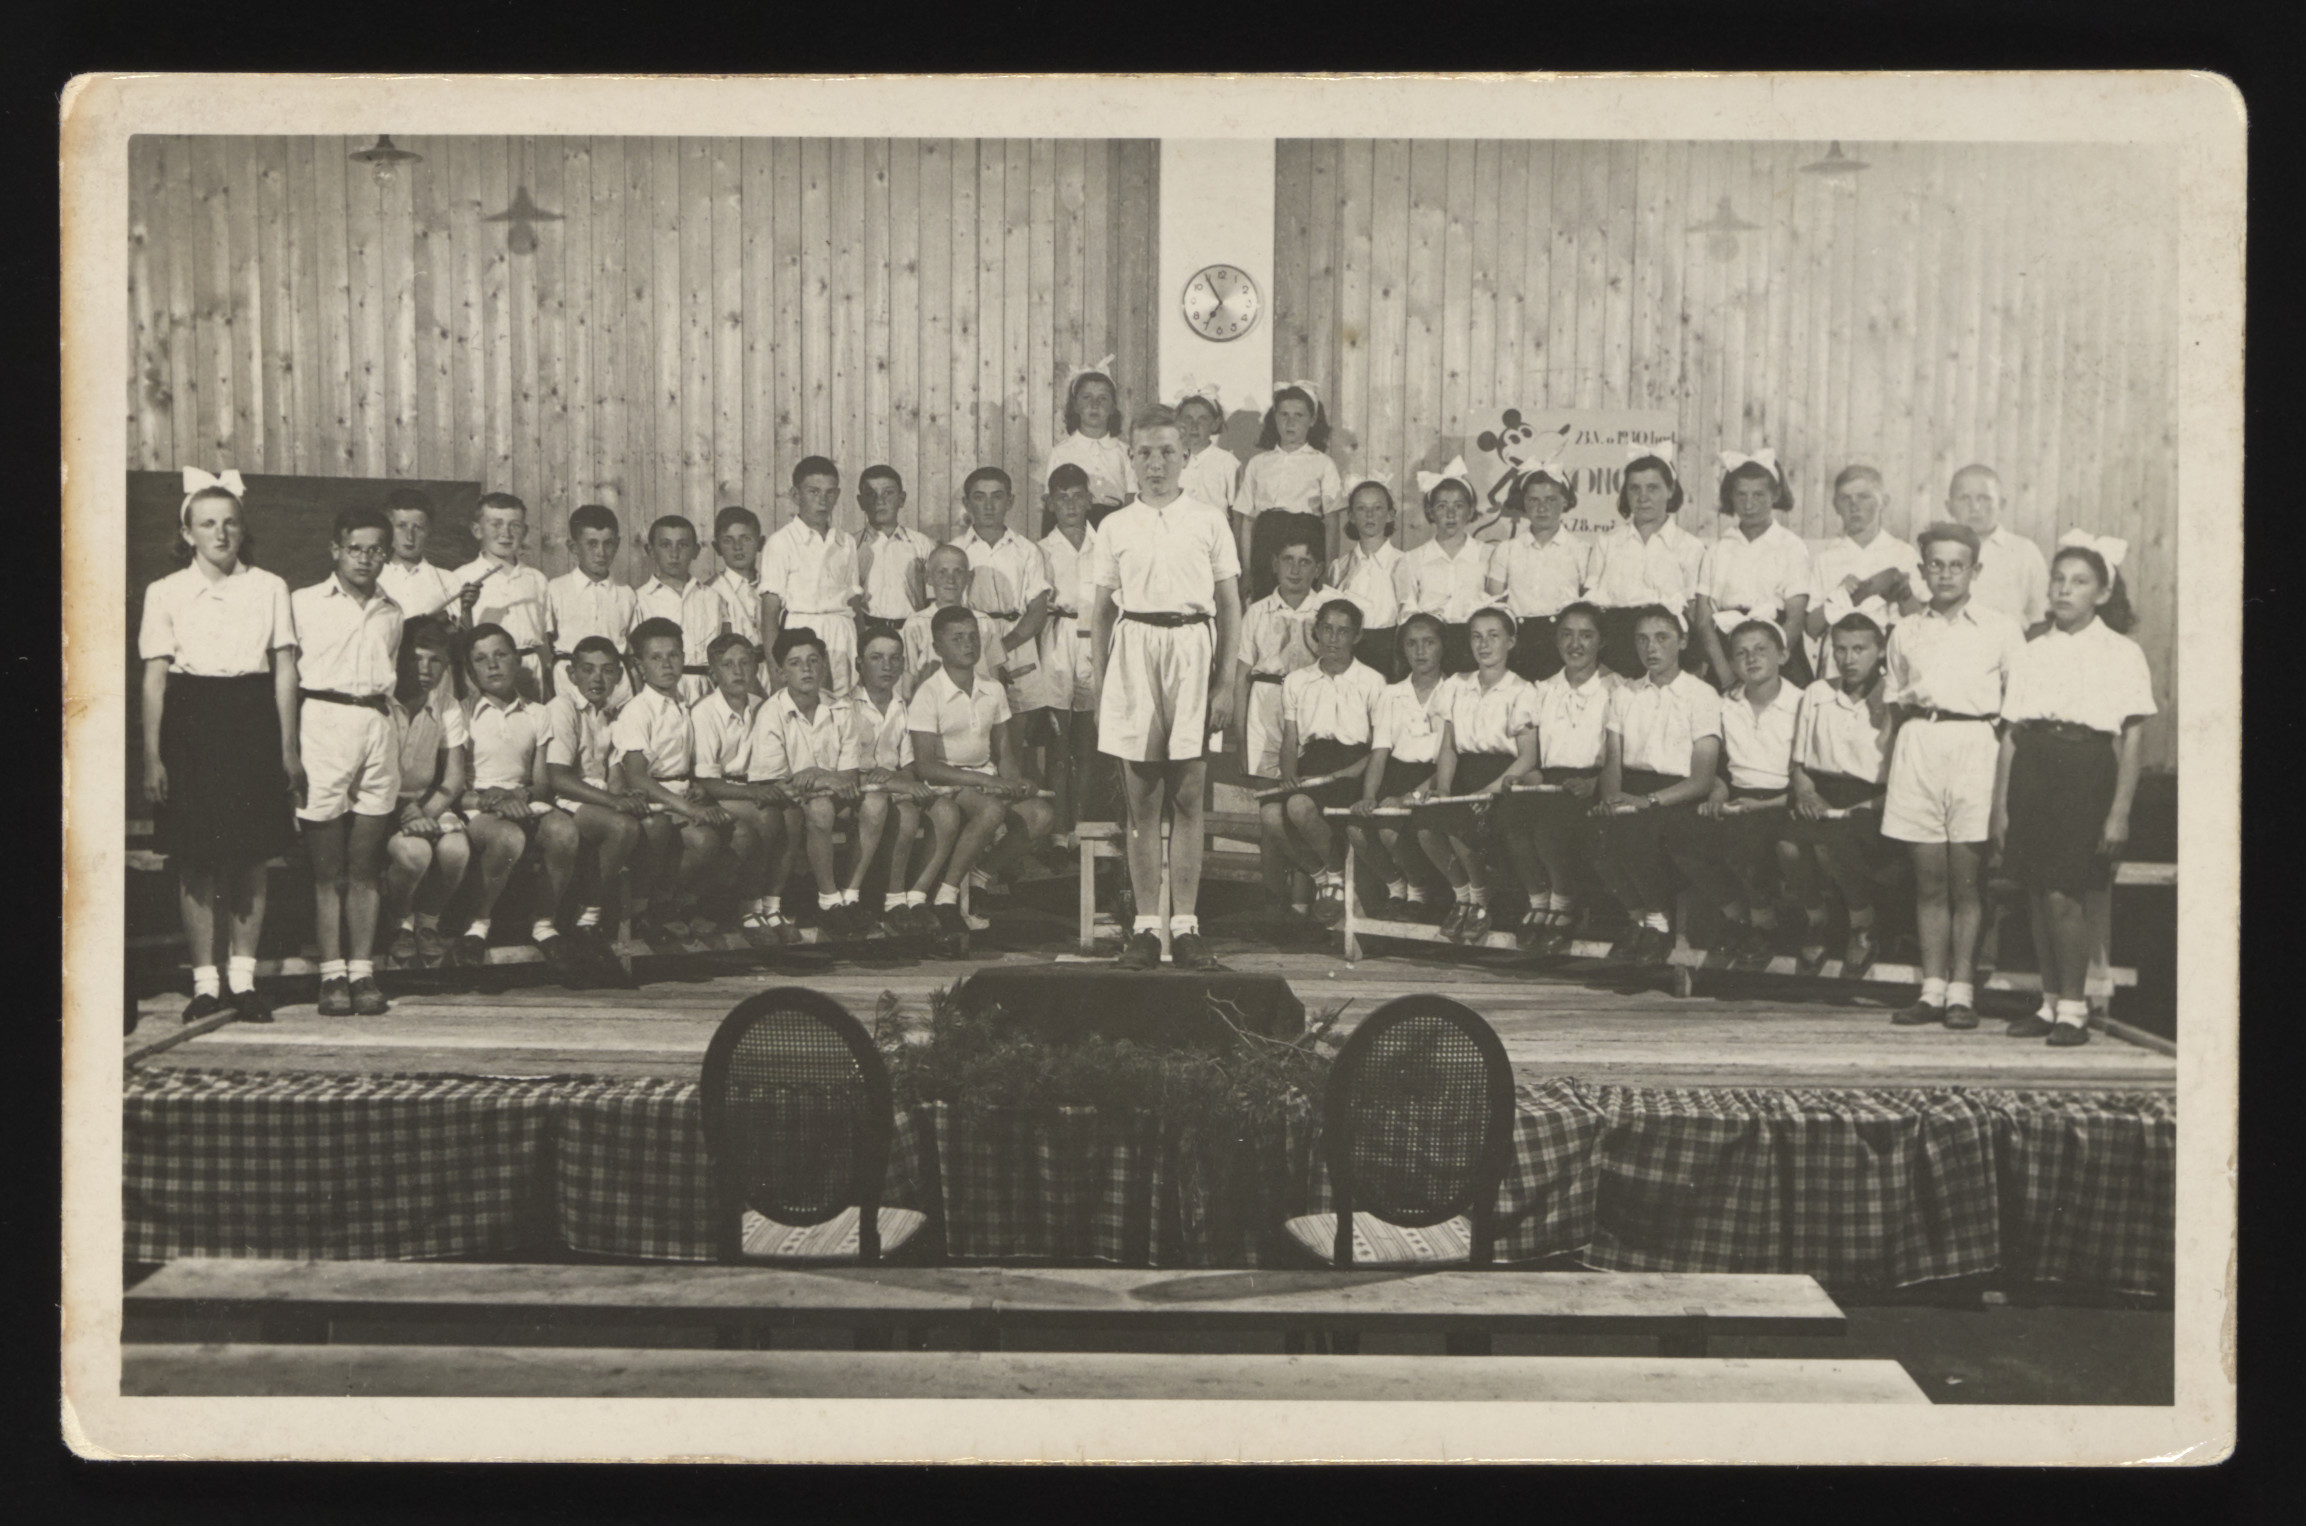 A large group of children put on a school performance at a Slovak labor camp.  The young boy standing in the front, center was later killed at Auschwitz.